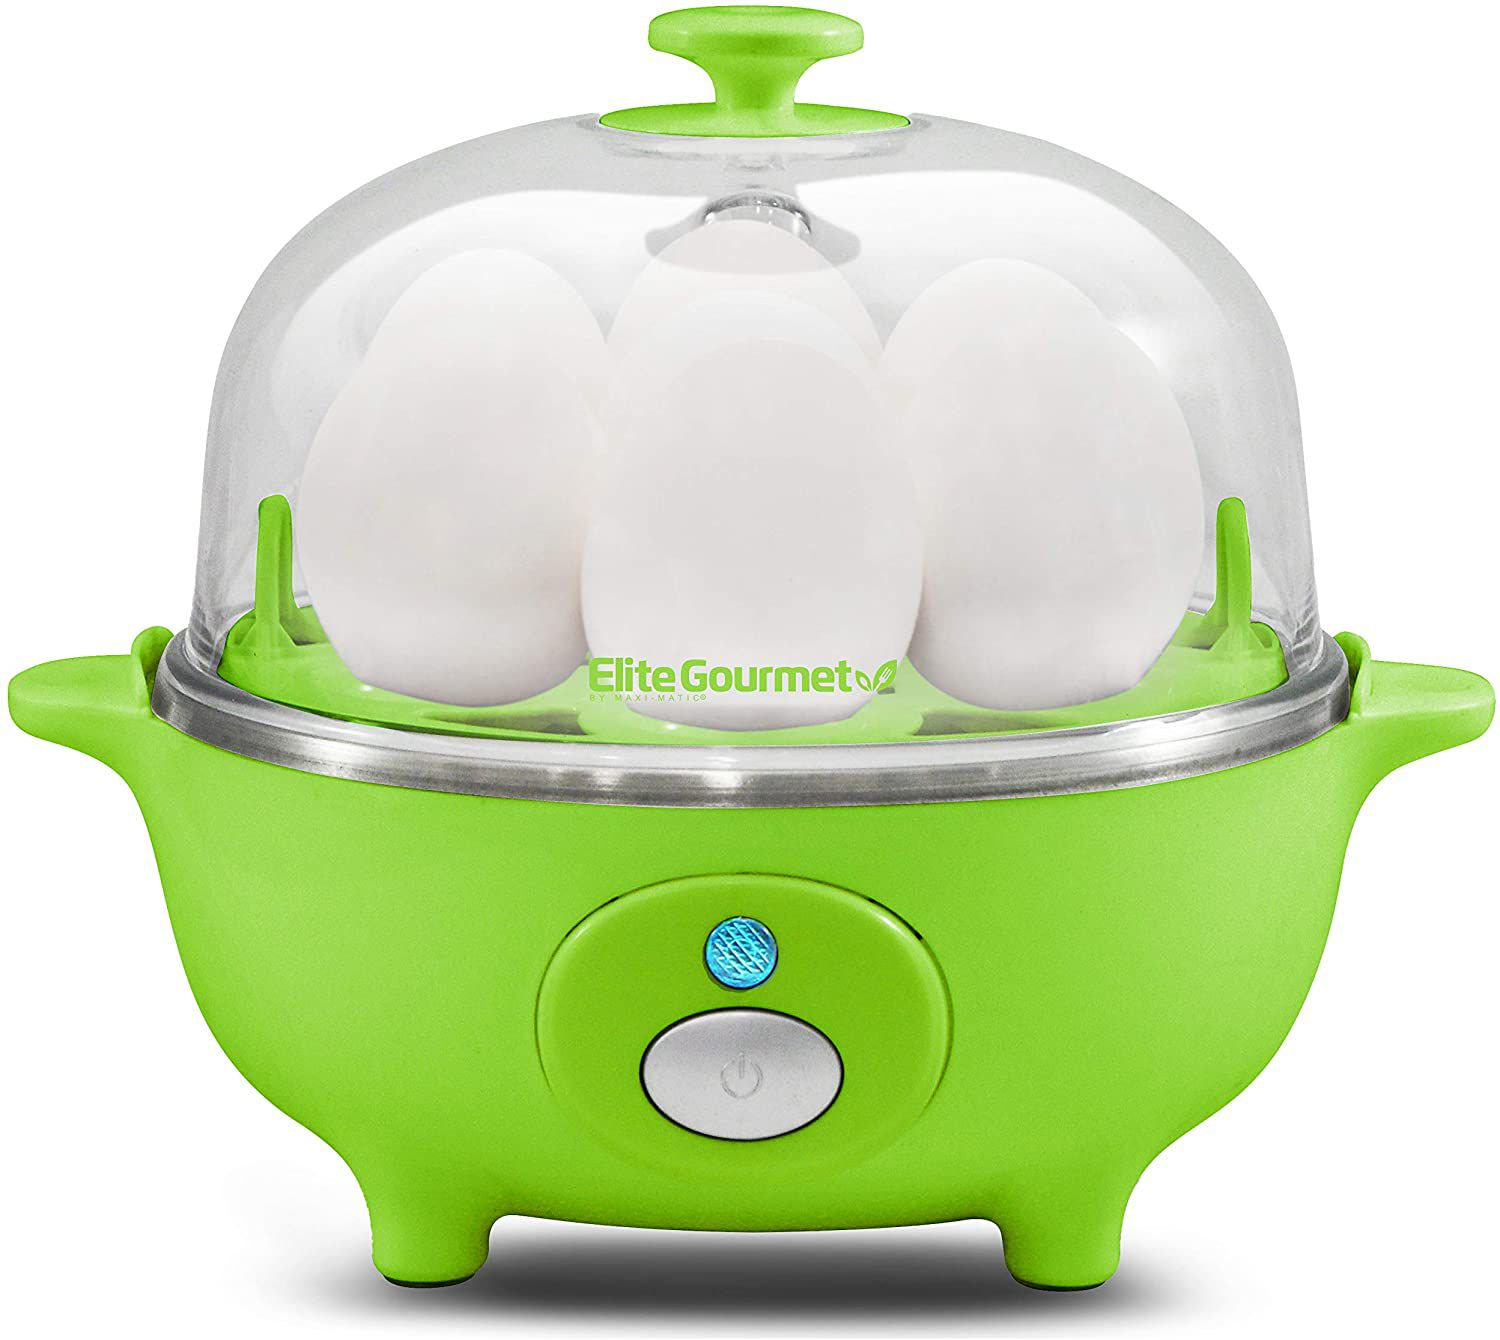 Elite Cuisine by Maxi-Matic Automatic Easy Egg Cooker EGC-007